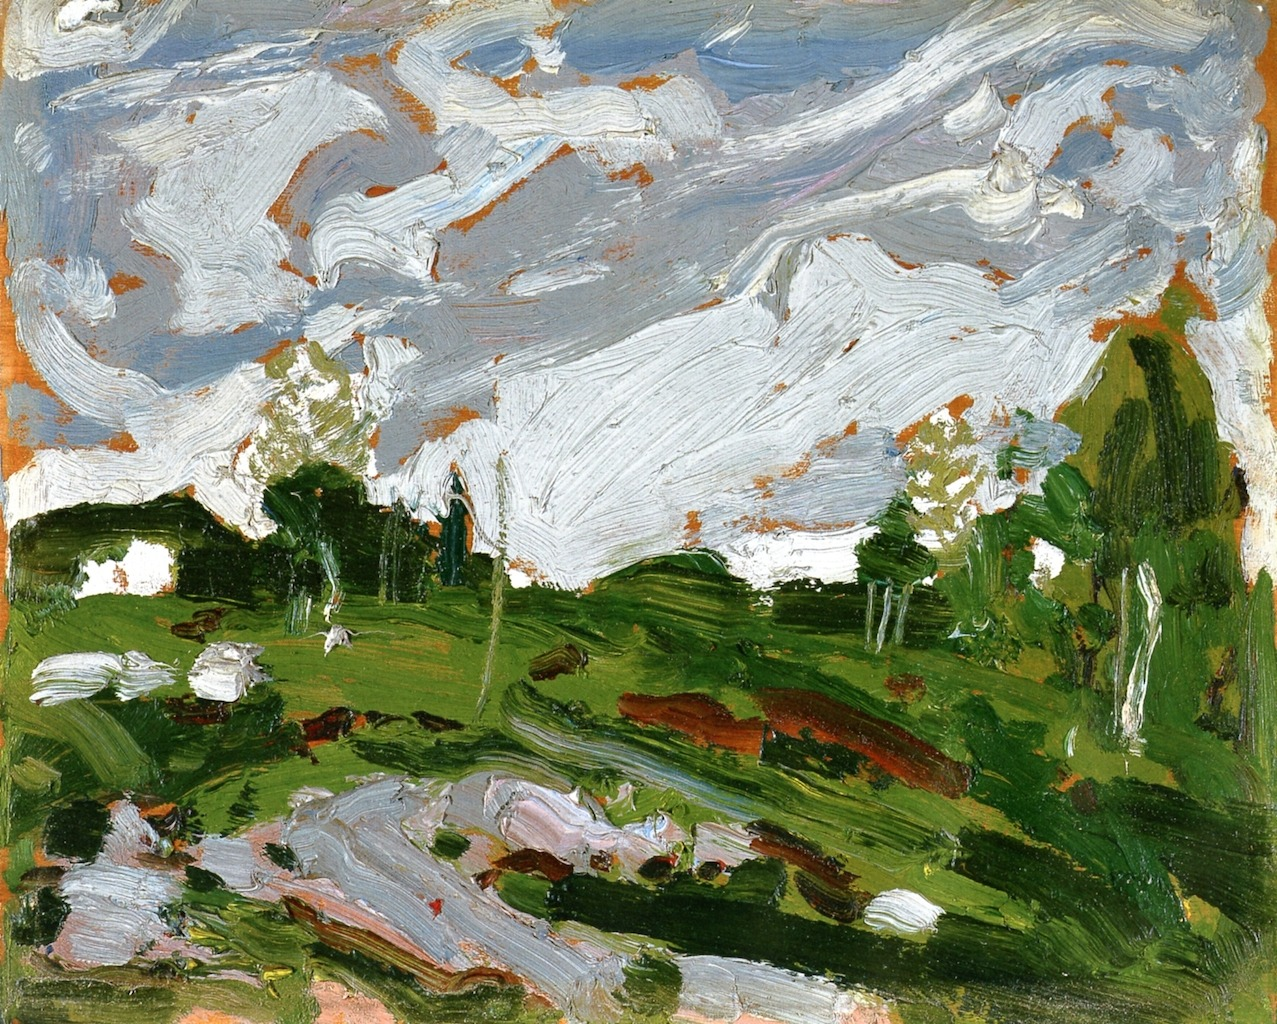 artishardgr:Tom Thomson - After the Storm 1917